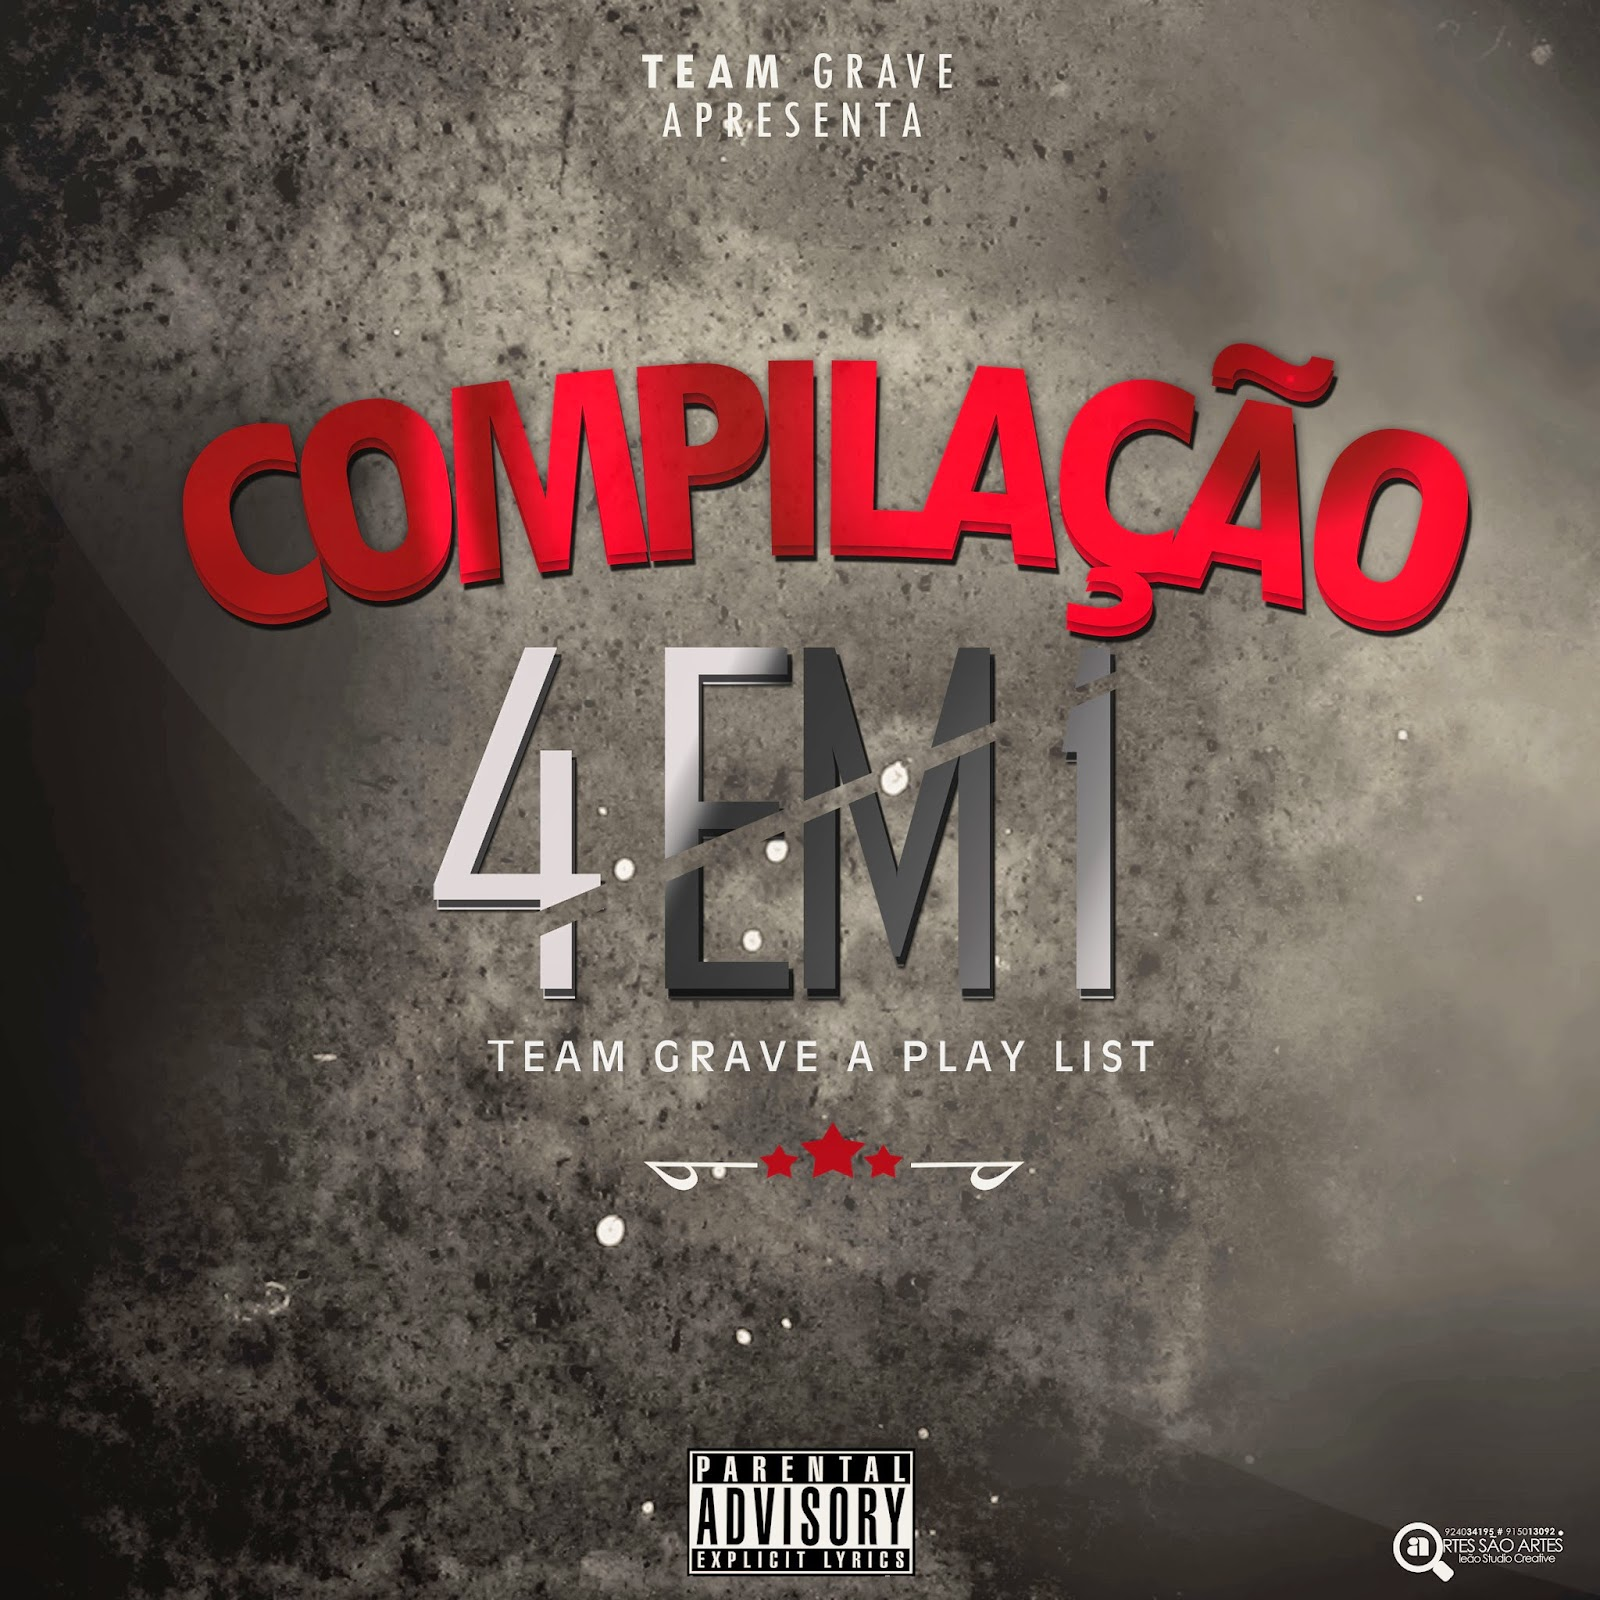 Team Grave - Compilação (4 em 1 Team Grave A Play-List)[2015] // DOWNLOAD